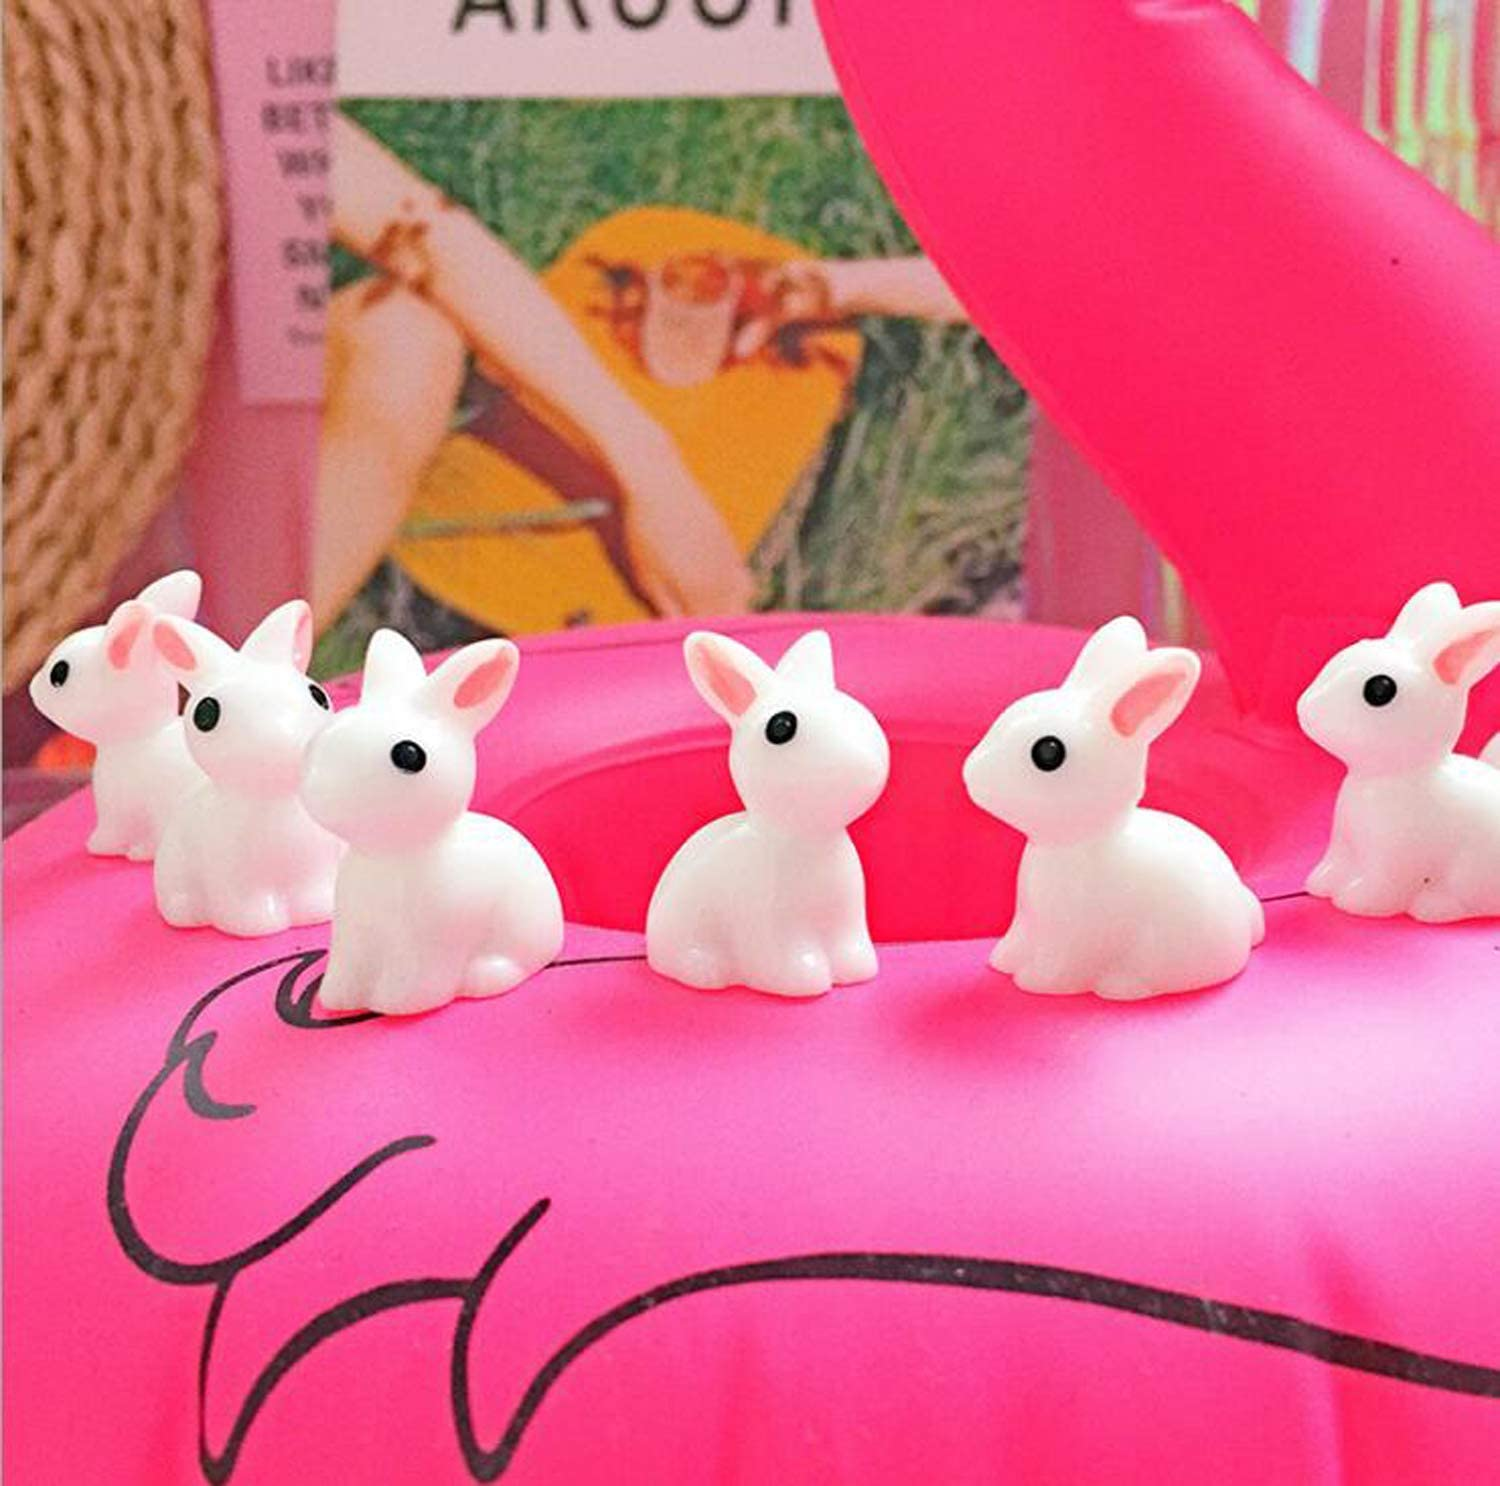 Smilesky Miniature Bunny Figure Animal Rabbit Toys Fairy Garden Party Decorations White 0.8 Pack of 20